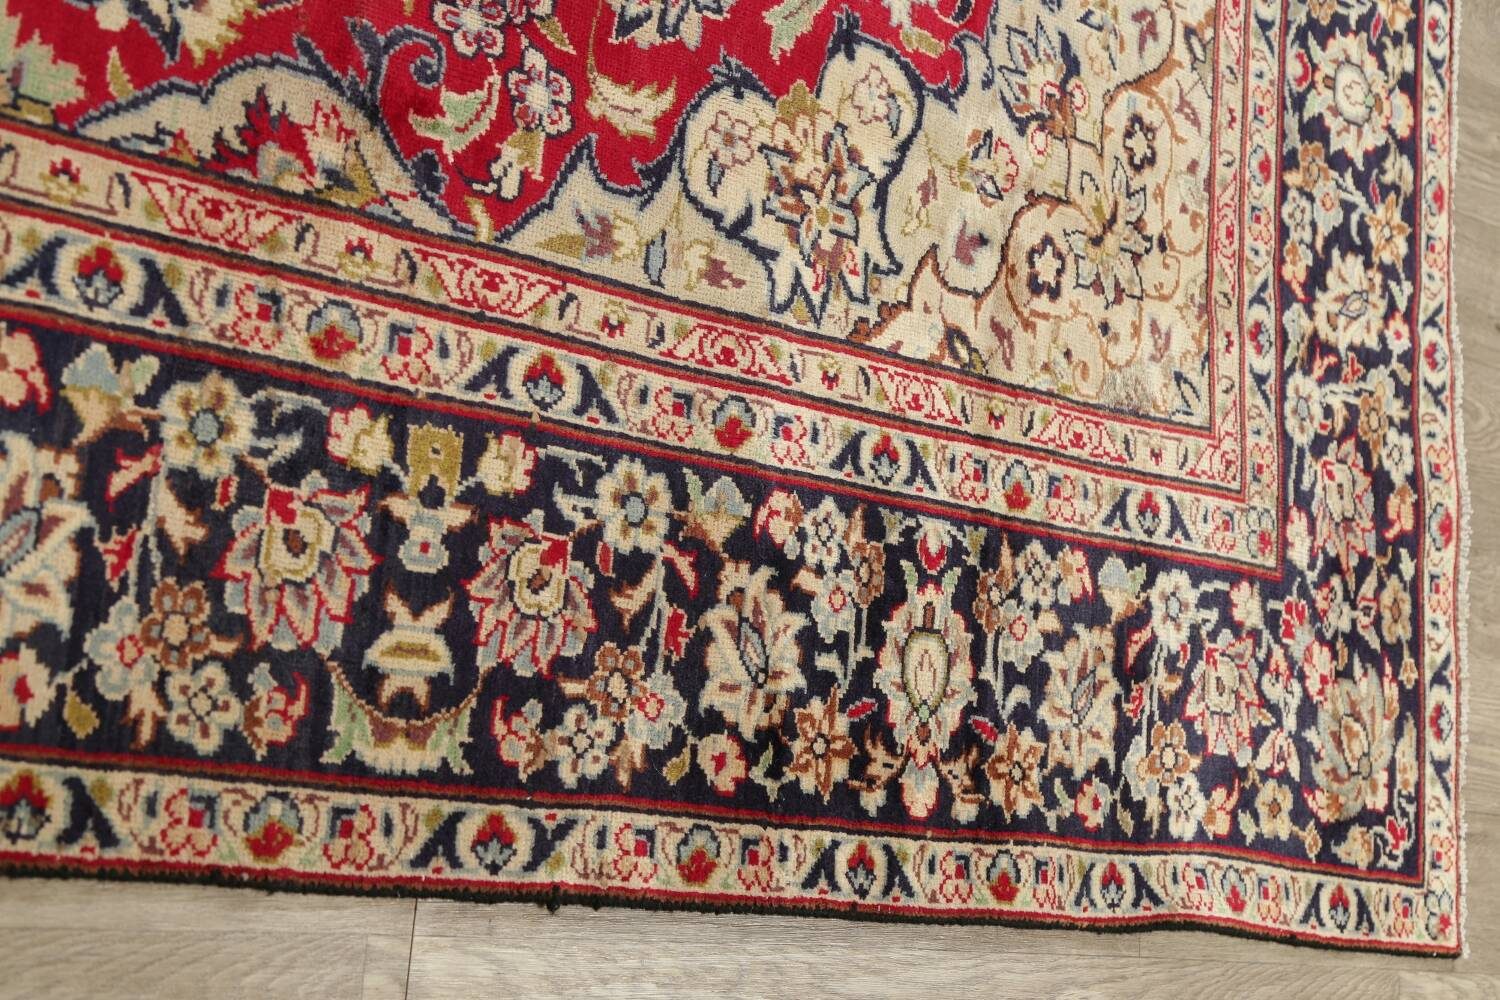 Vintage Floral Red Najafabad Persian Area Rug 8x12 image 16